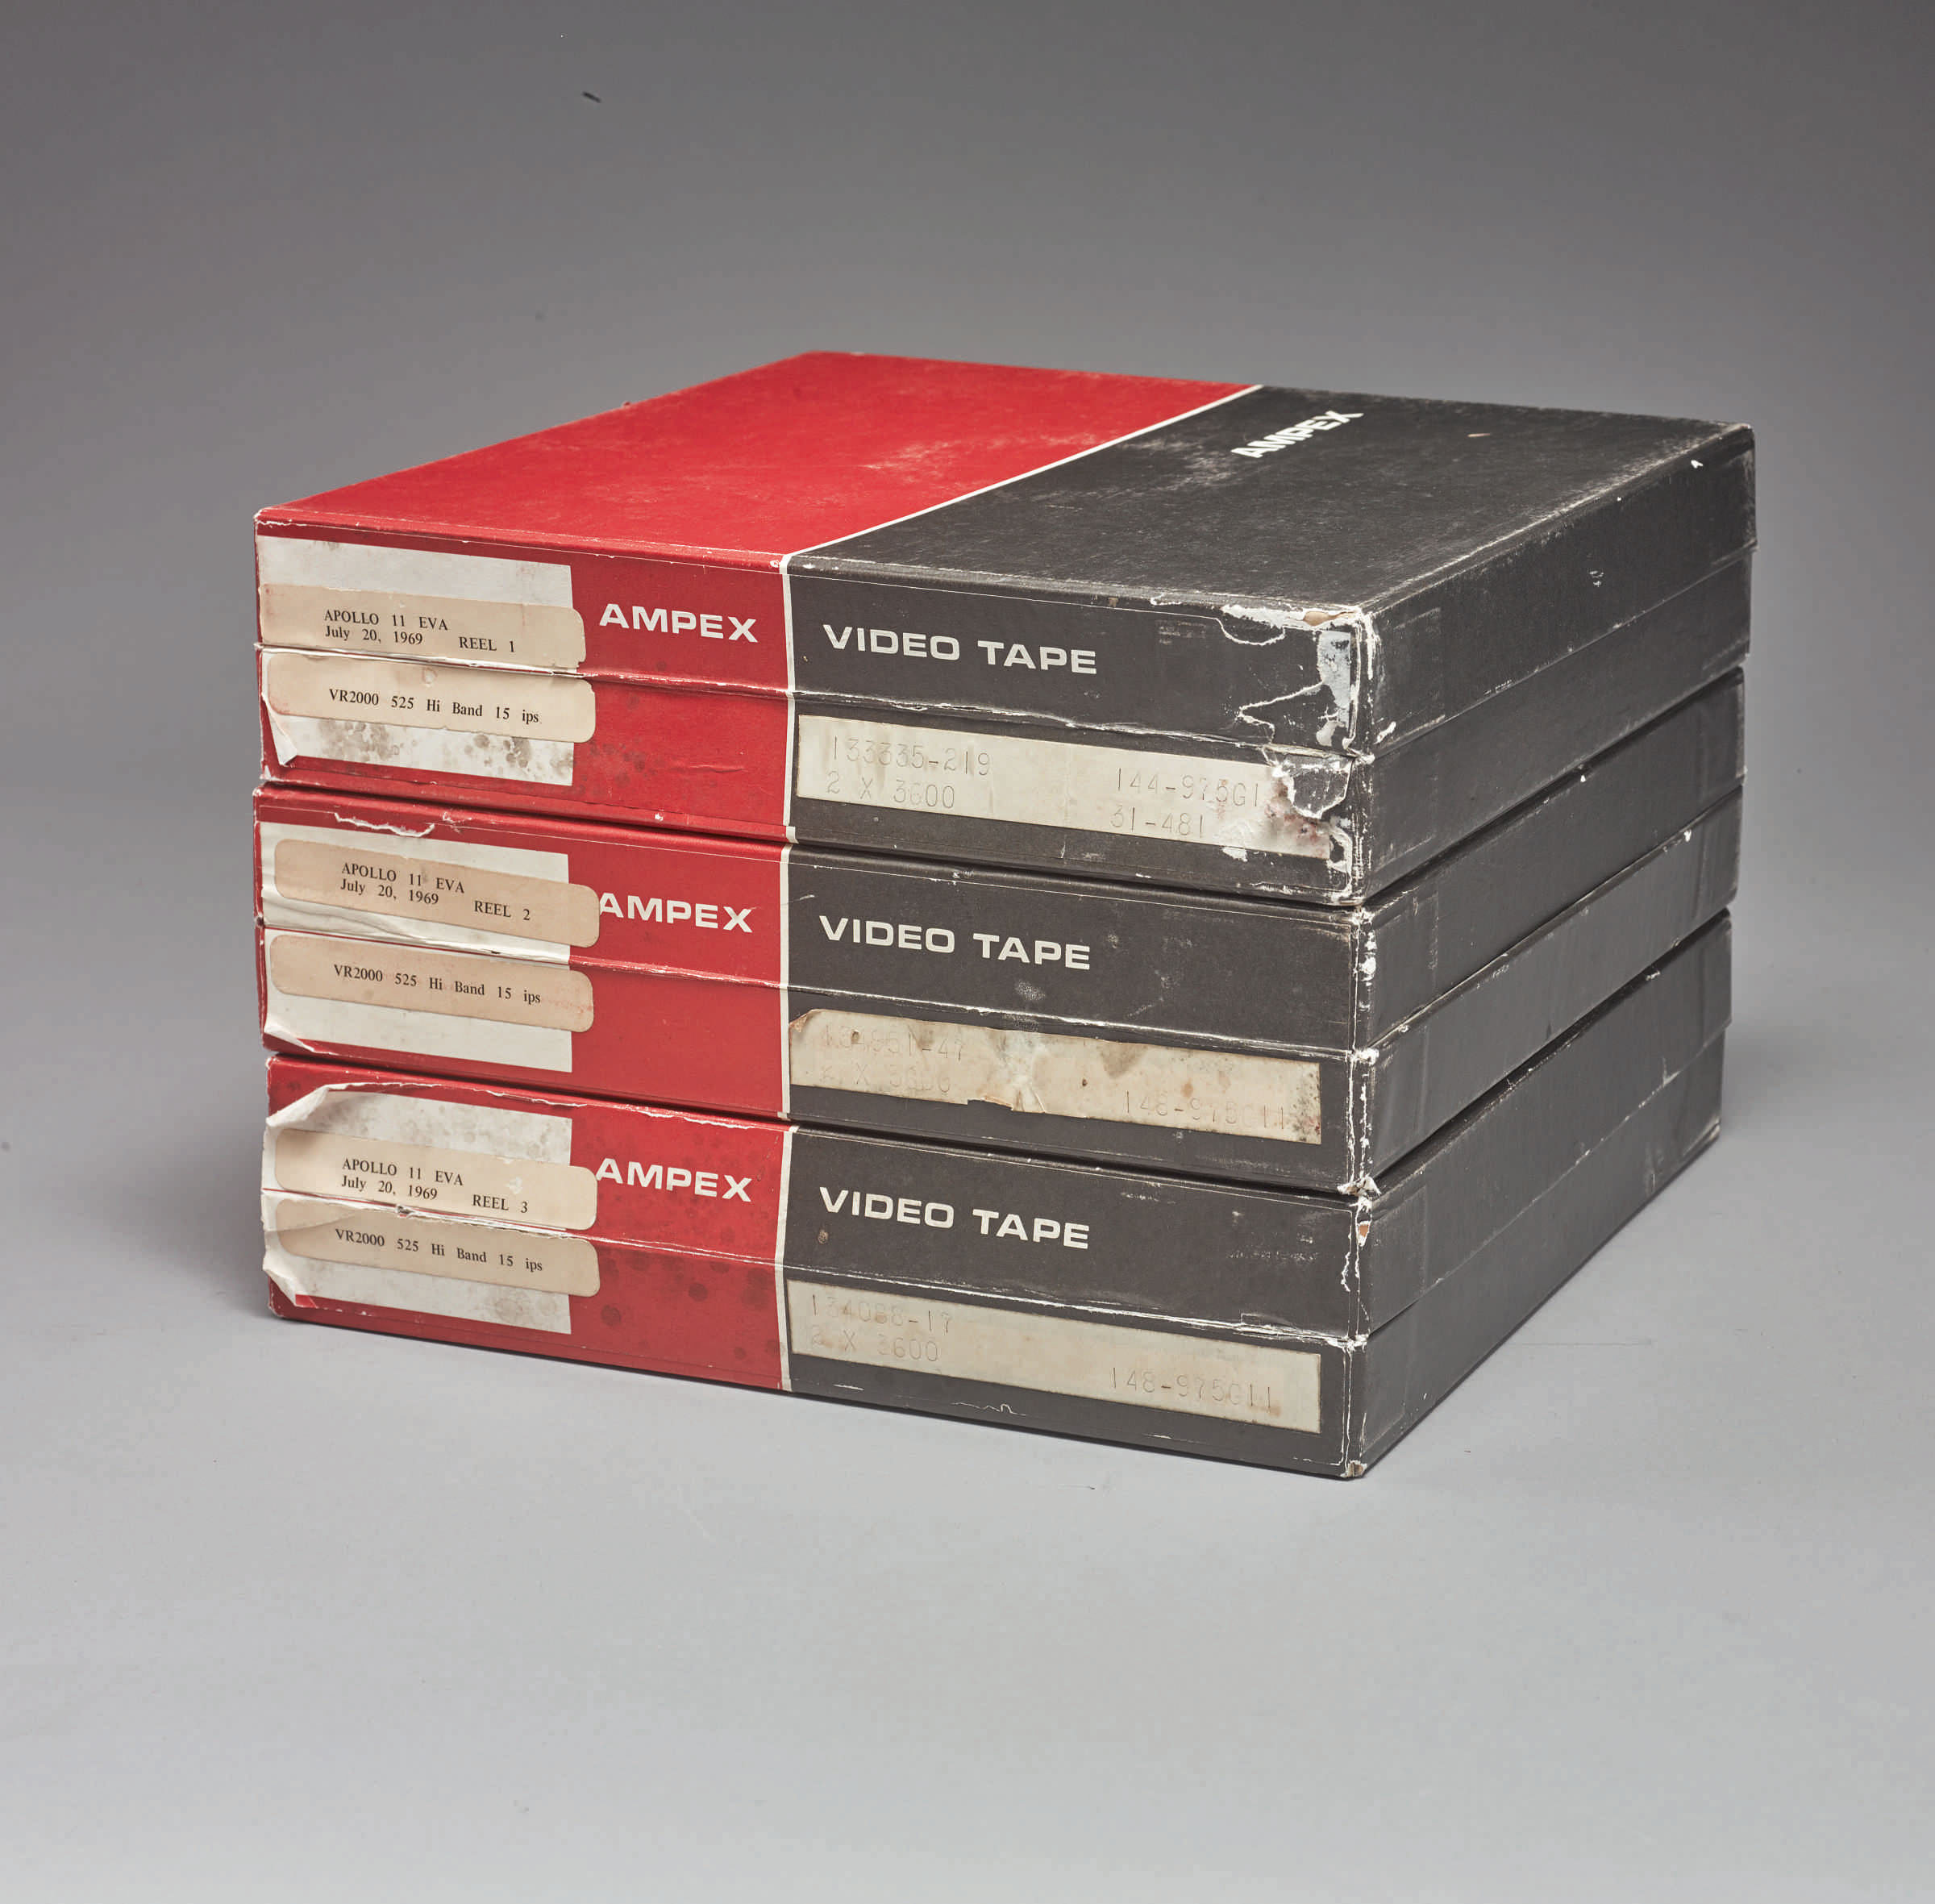 A stack of three AMPEX tape boxes containing original, first-generation NASA recordings of the Apollo 11 moon walk.